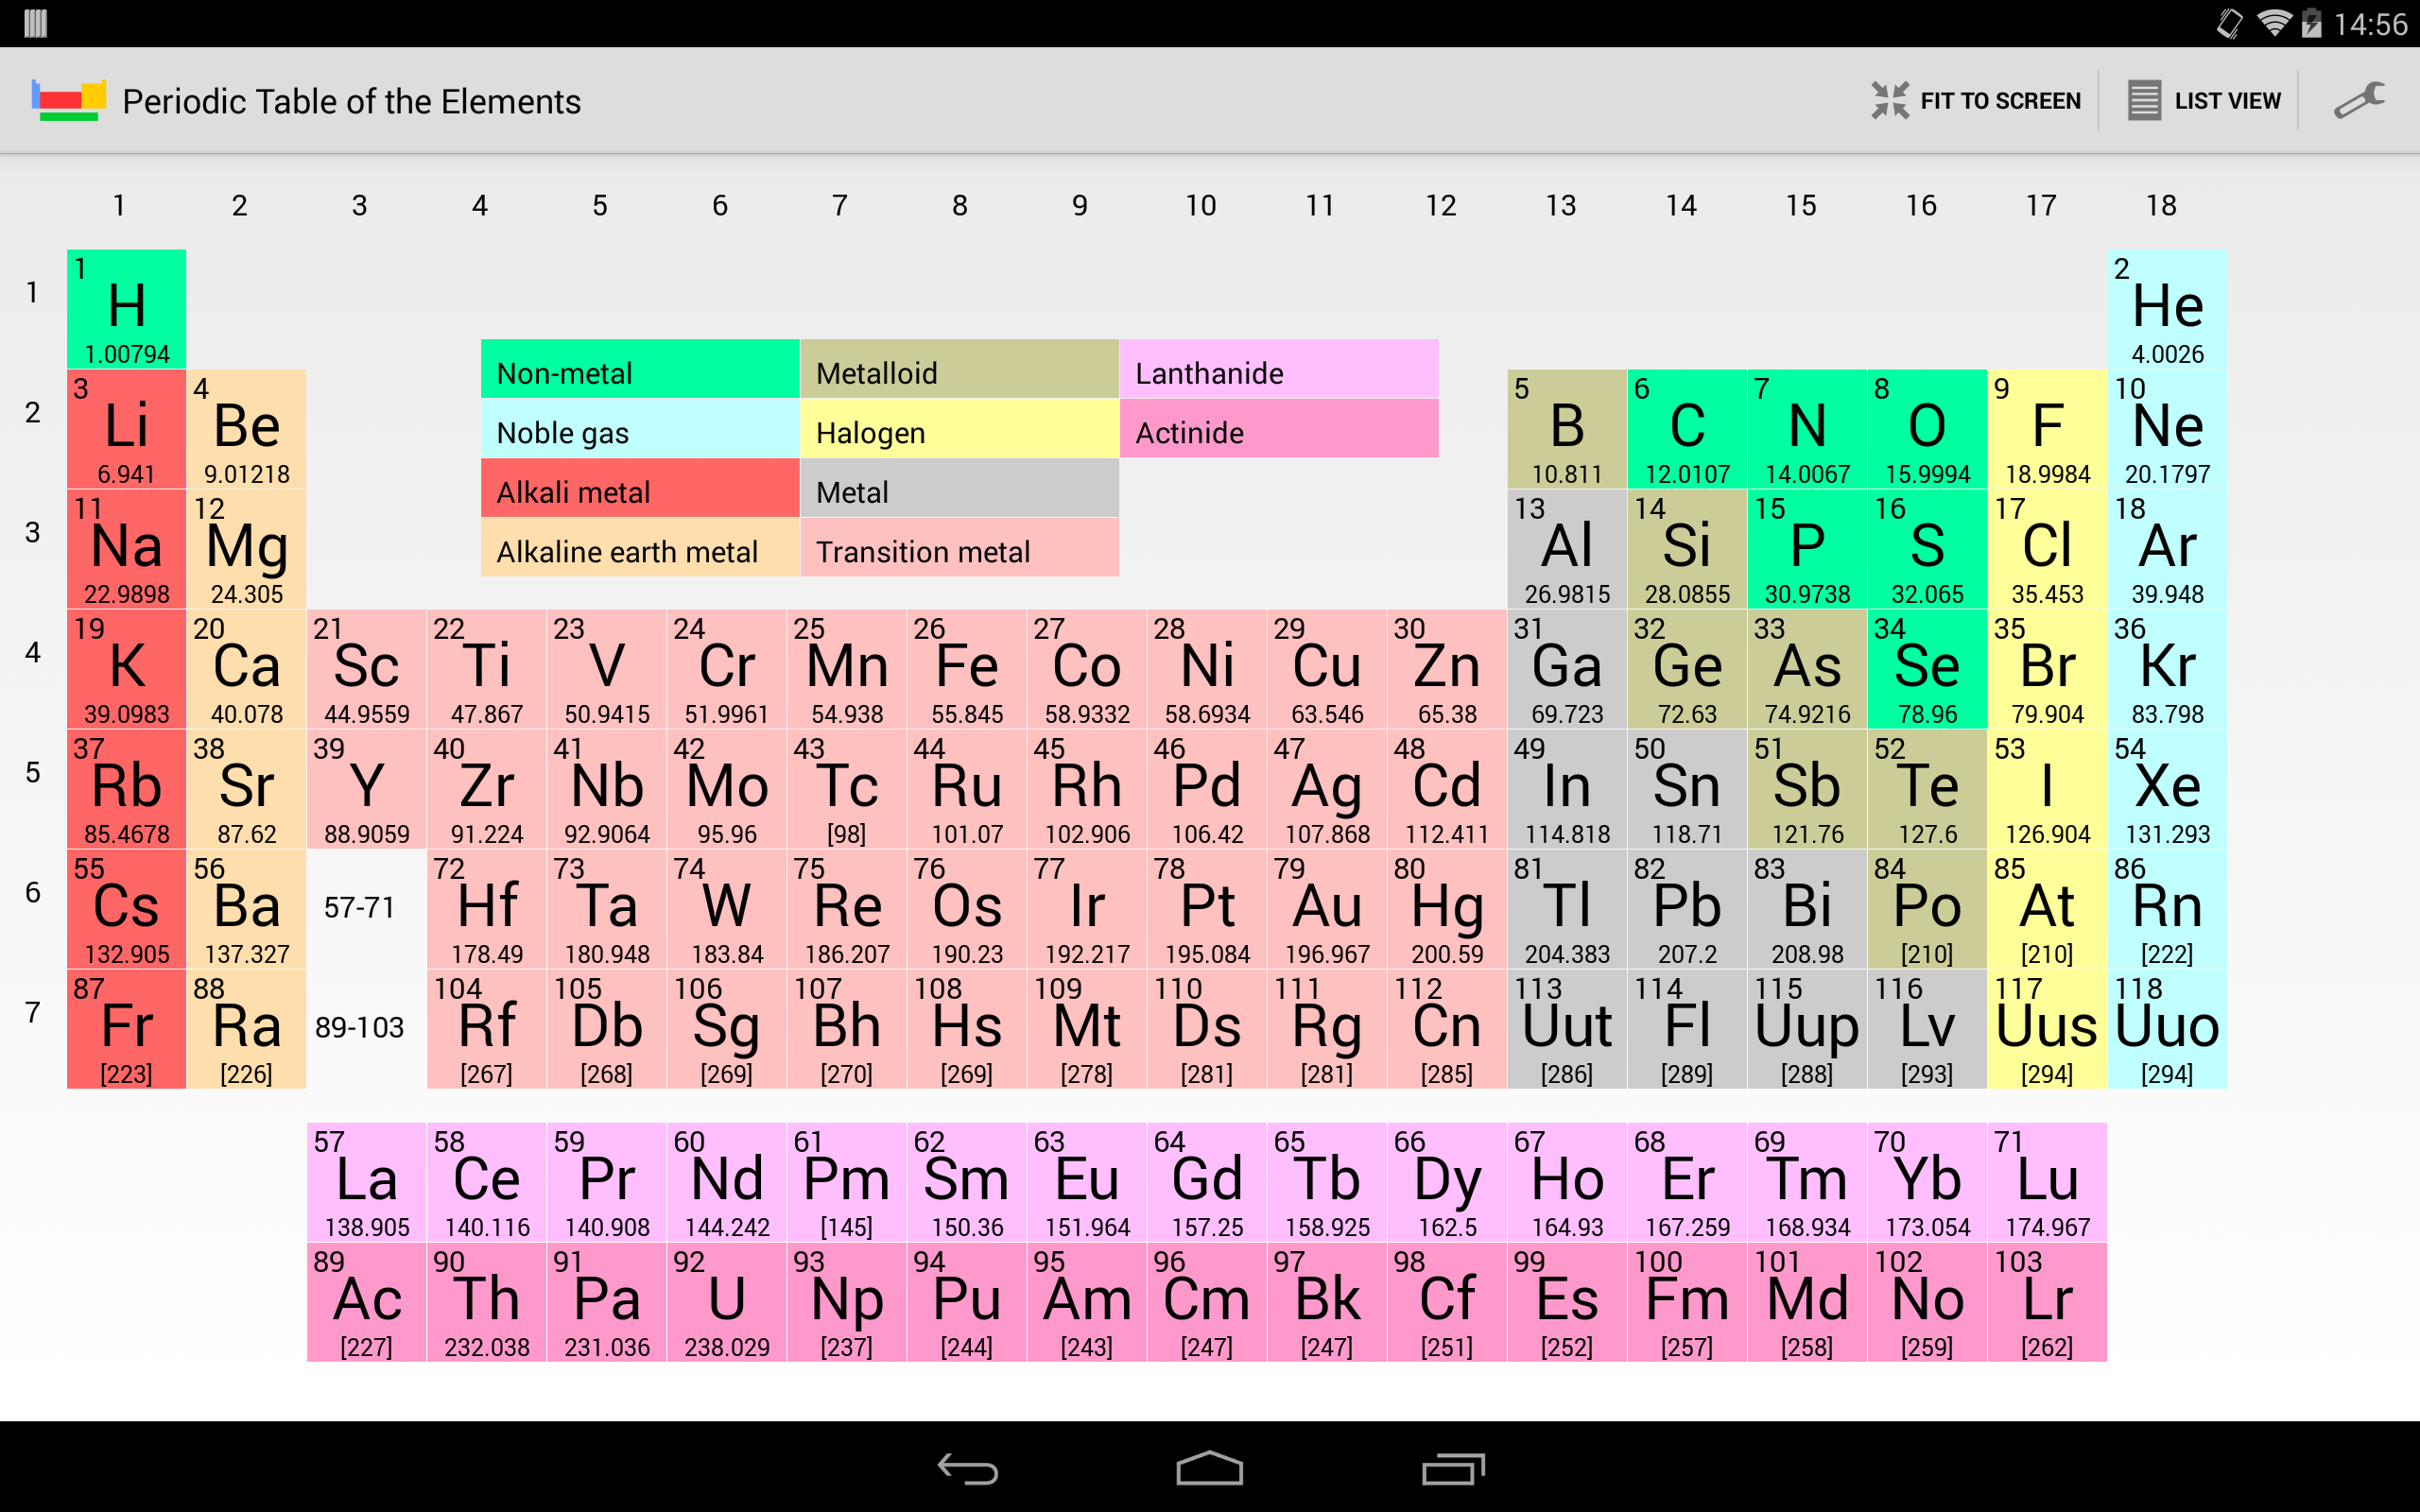 Periodic table of the elements periodic table is a free app available on google play store periodic table brings you periodic table of the elements on your smartphone urtaz Image collections